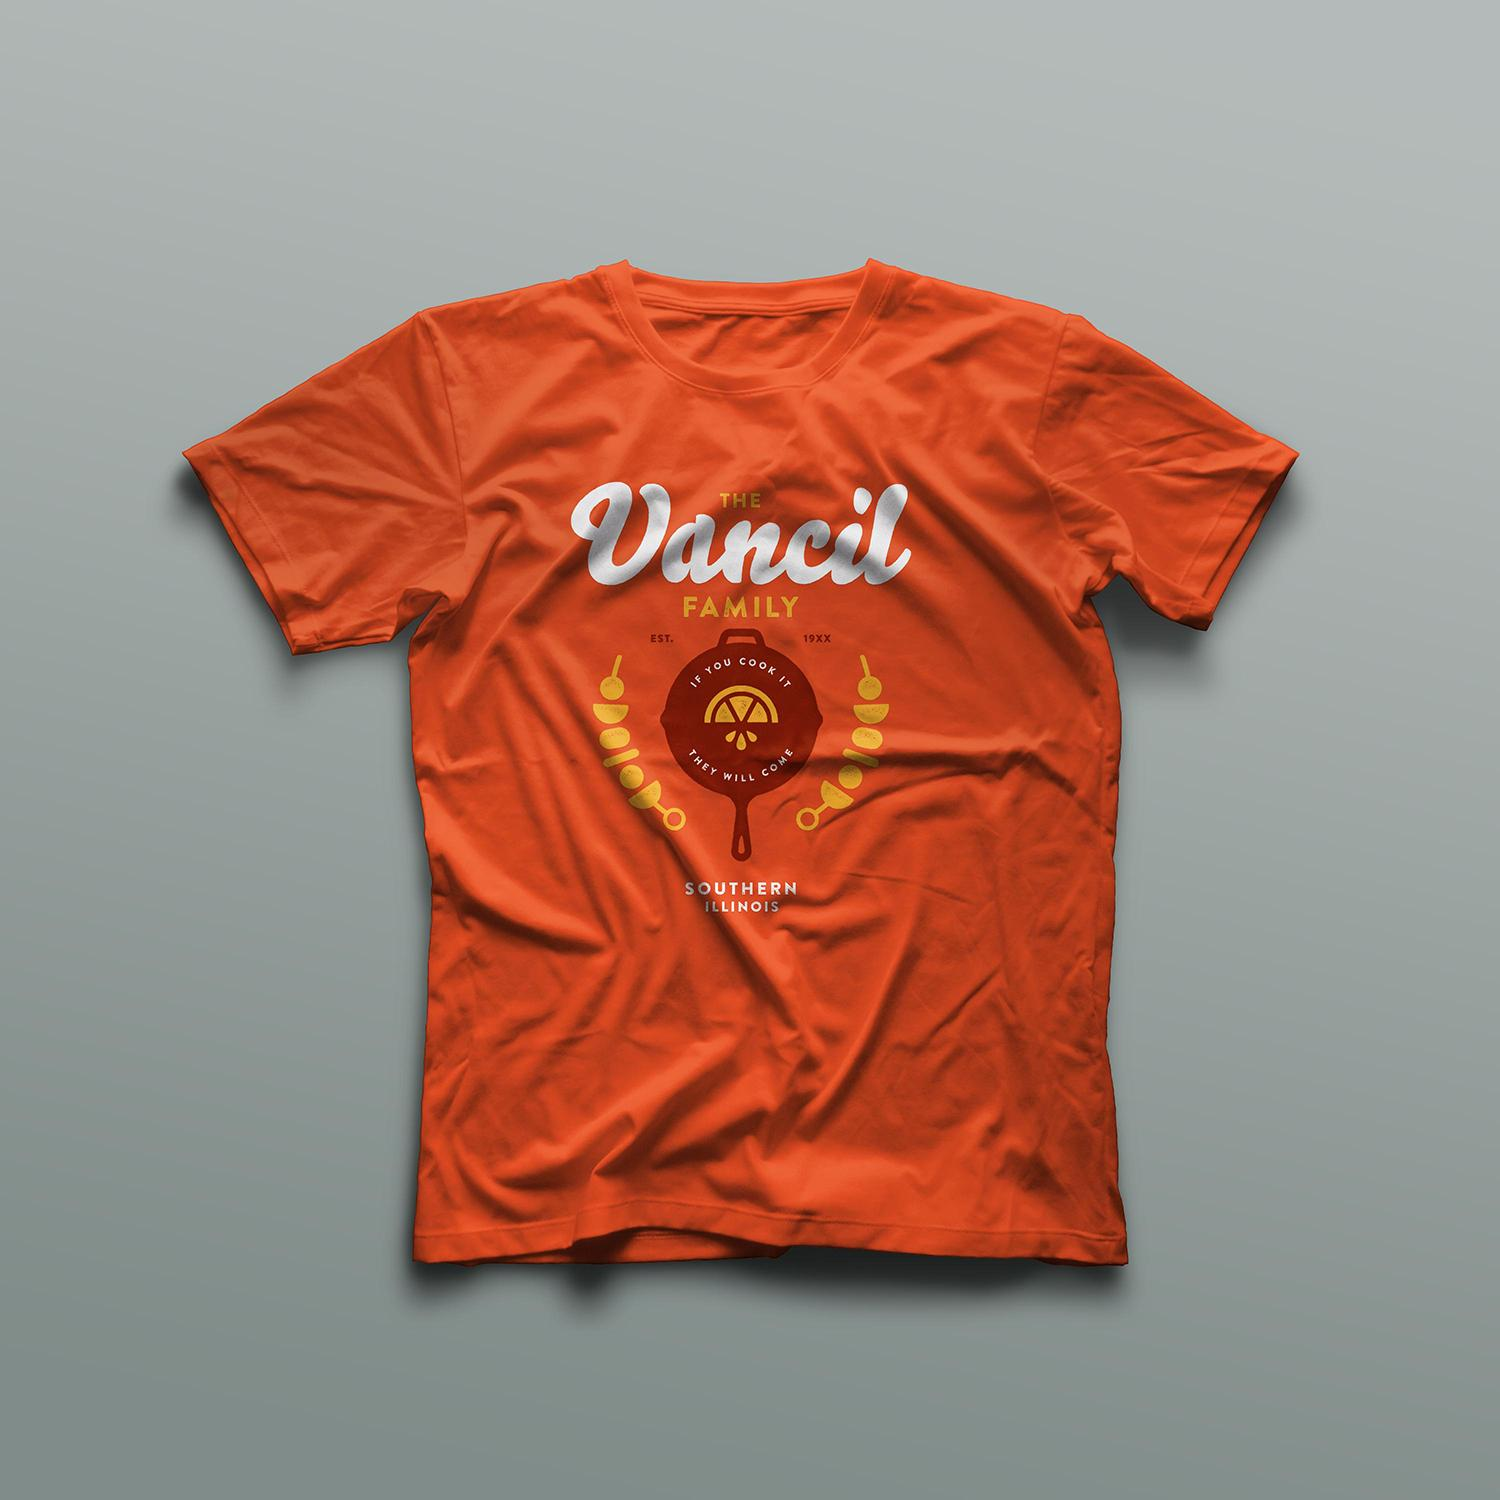 Vancil Family Crest - image 3 - student project